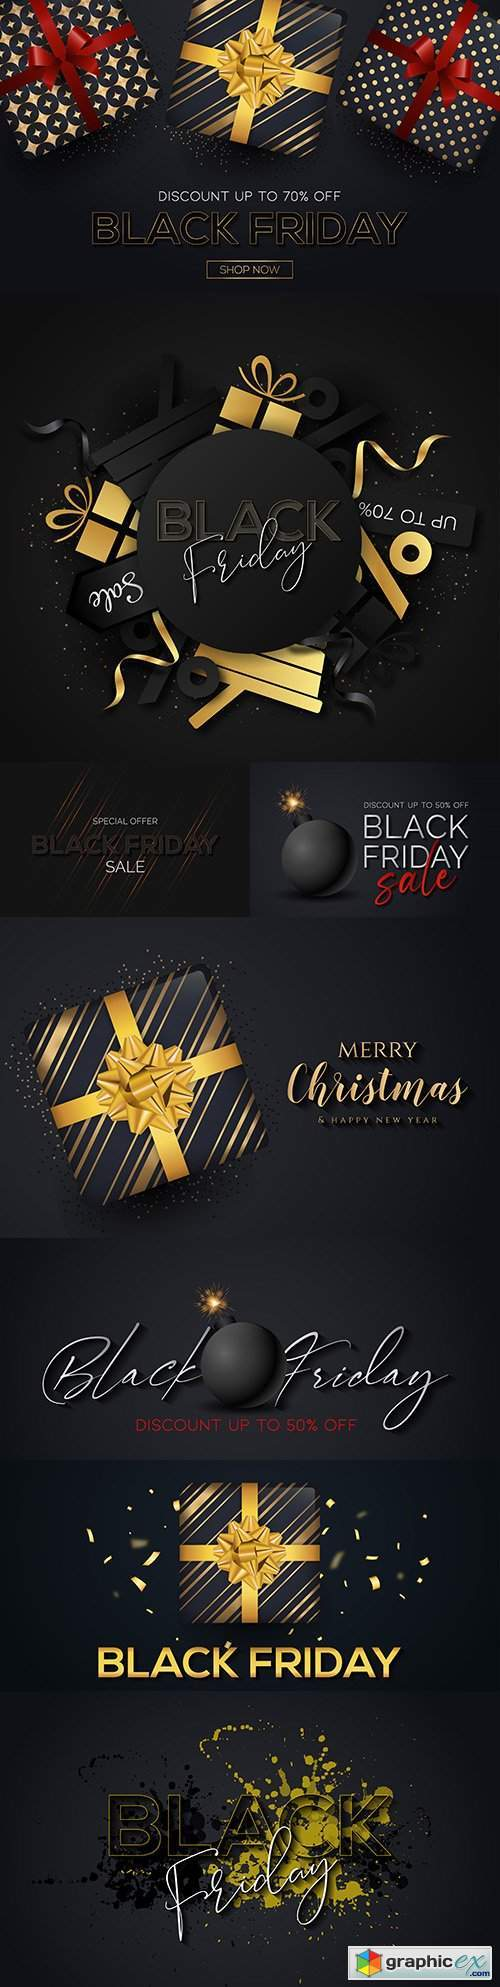 Merry Christmas Black Friday promotion sale special banner